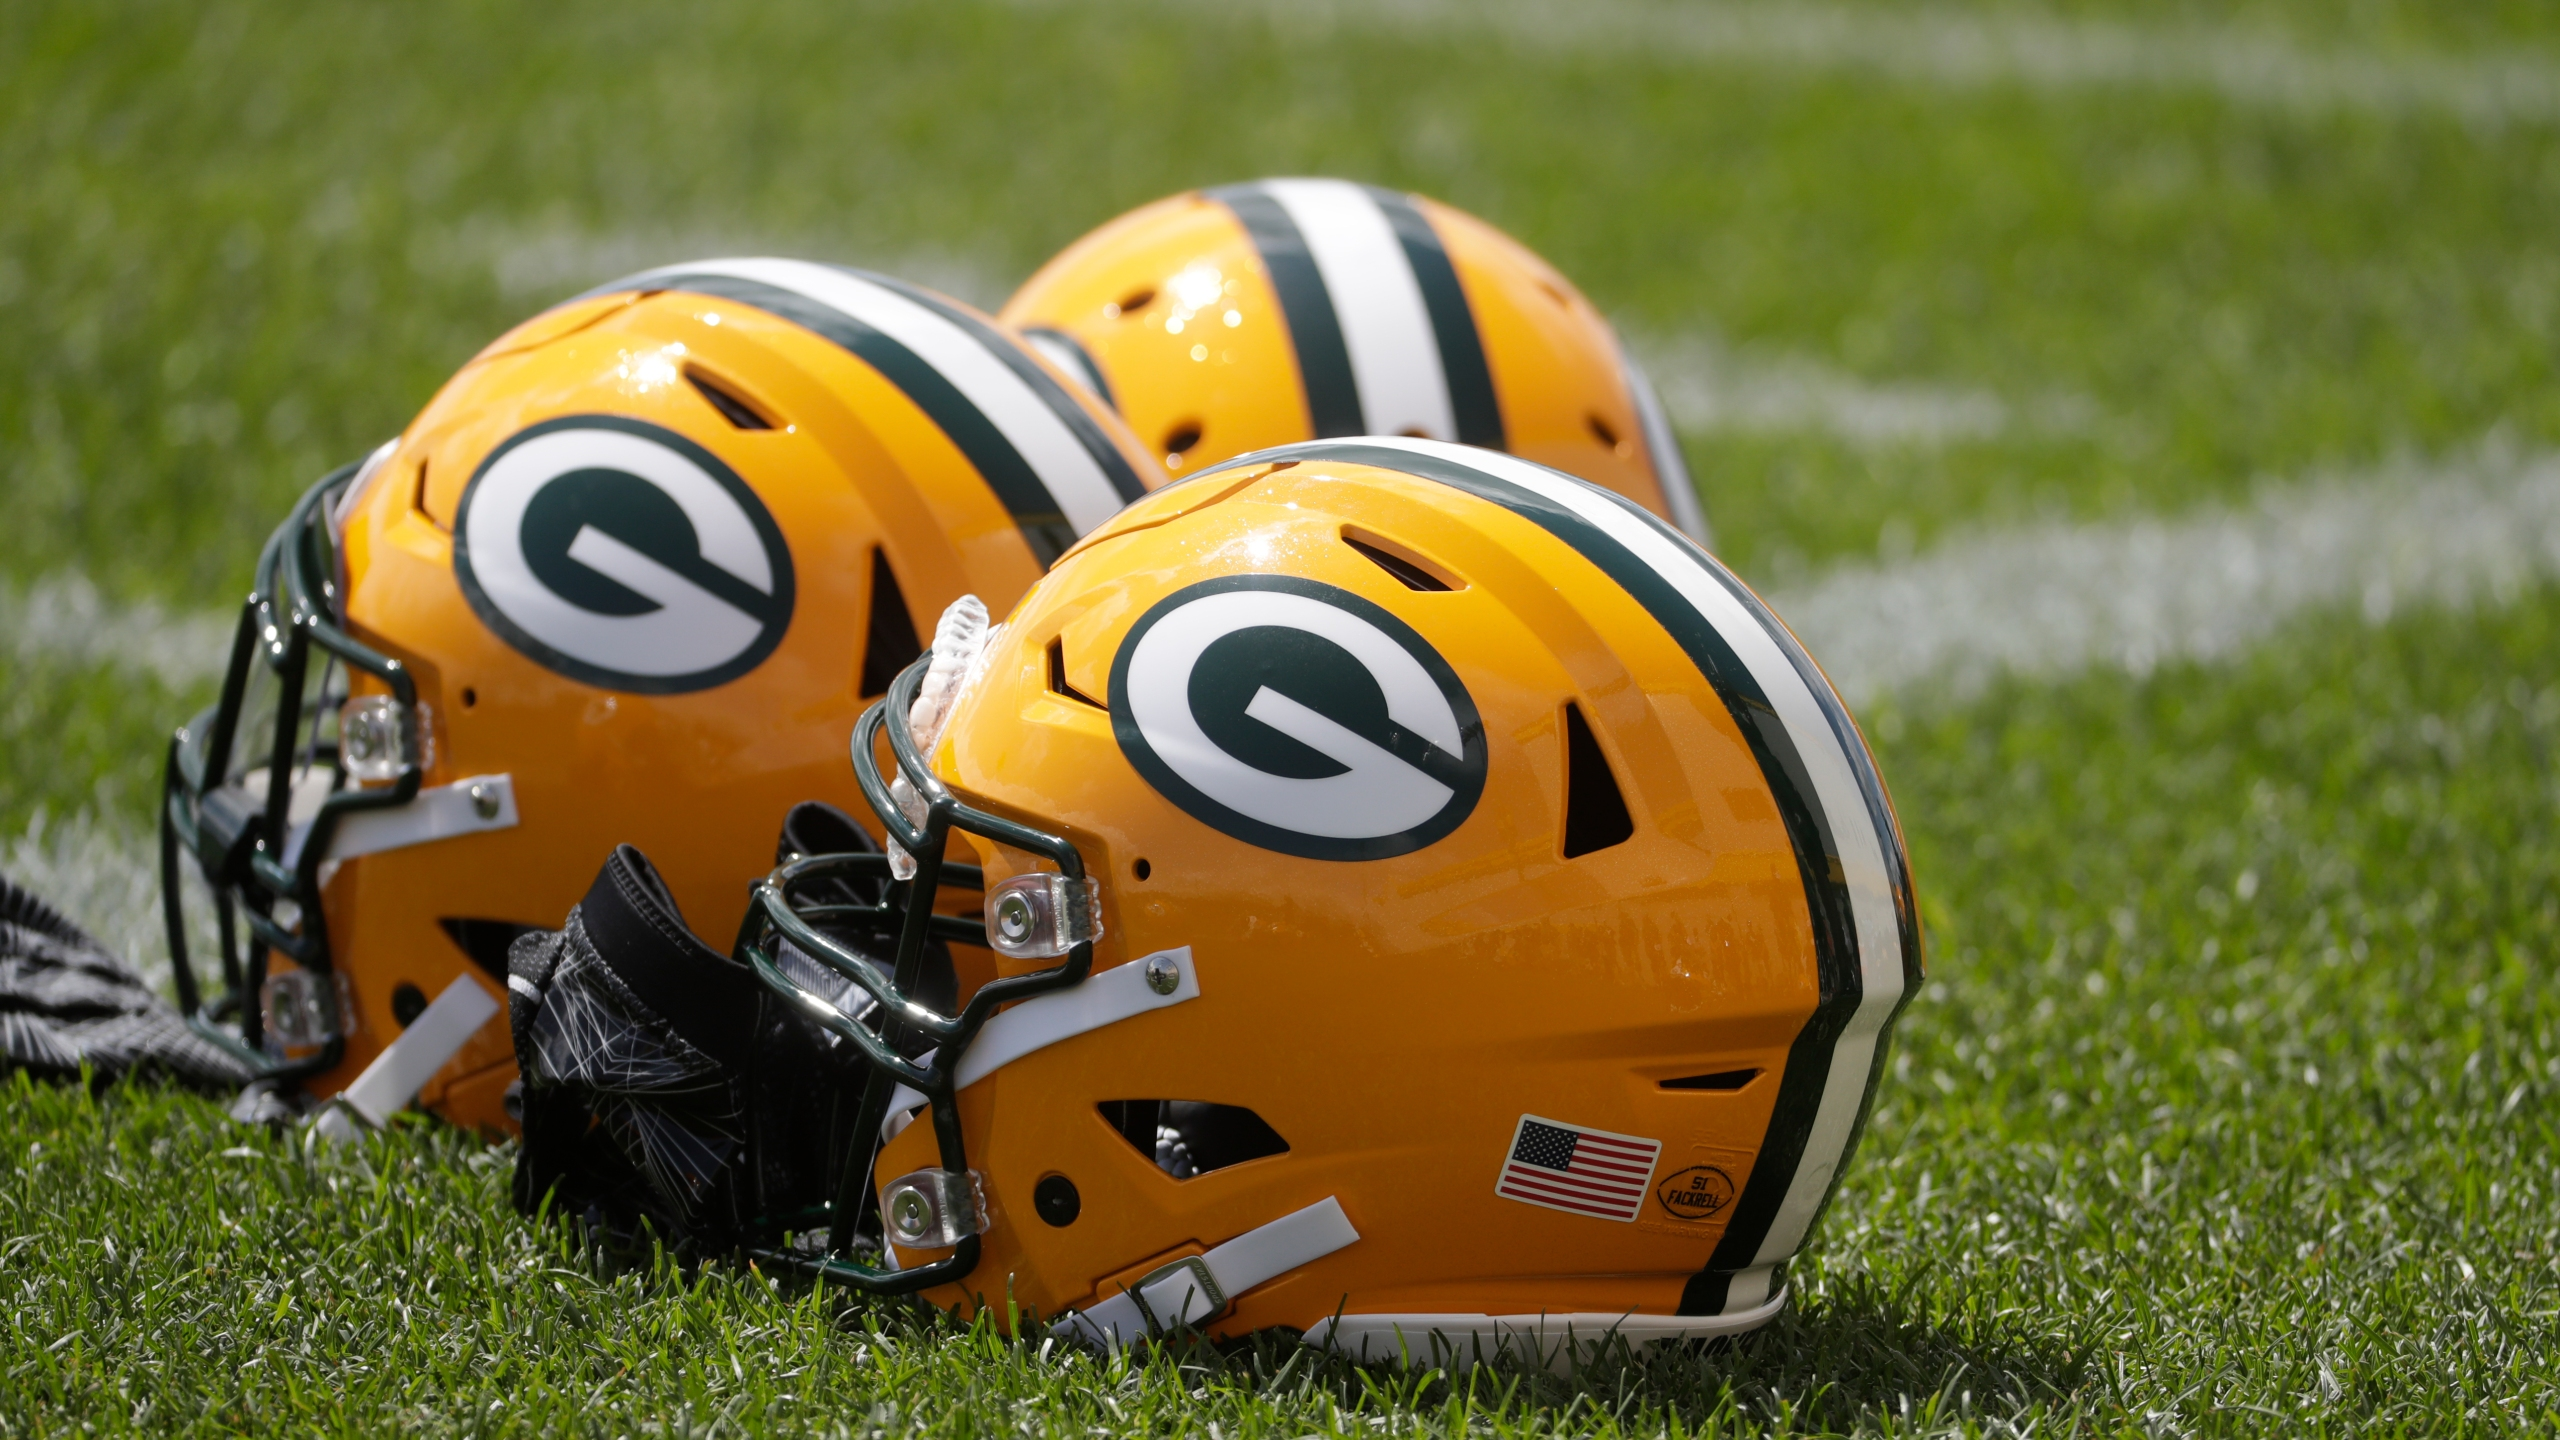 Packers Make Cuts Trim Roster To 53 Players Wjmn Upmatters Com